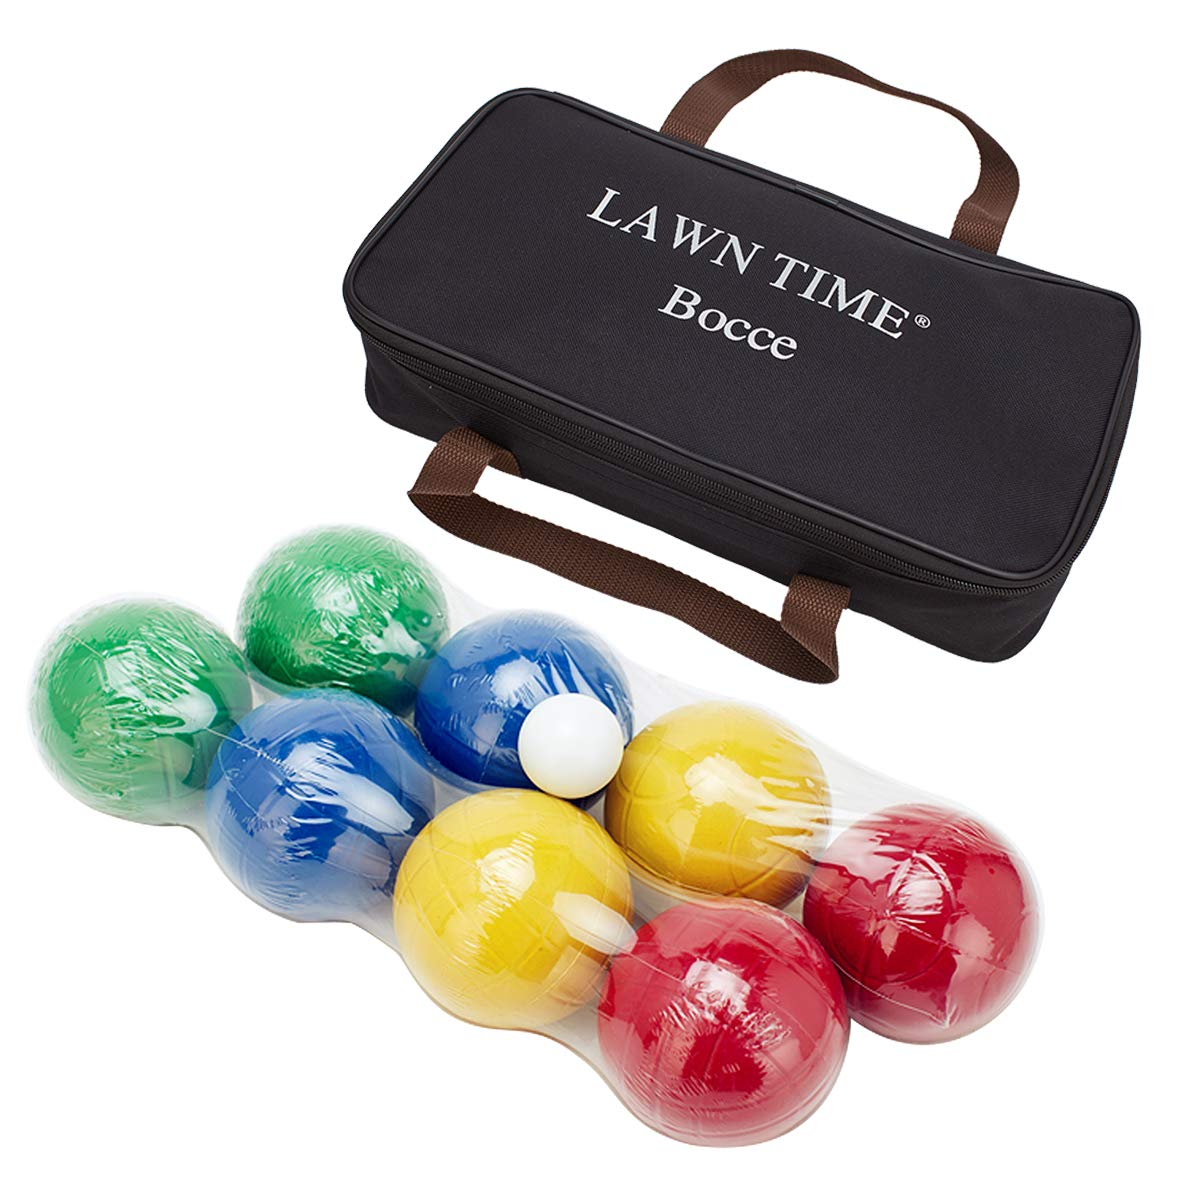 LAWN TIME 90mm Bocce Ball Set | Includes 8 Recreational Plastic Balls, 1 Pallino (Jack Ball) and 1 Nylon Zip-Up Carrying Case | Beach, Backyard or Outdoor Party Game - Family Fun for All Ages by LAWN TIME (Image #1)